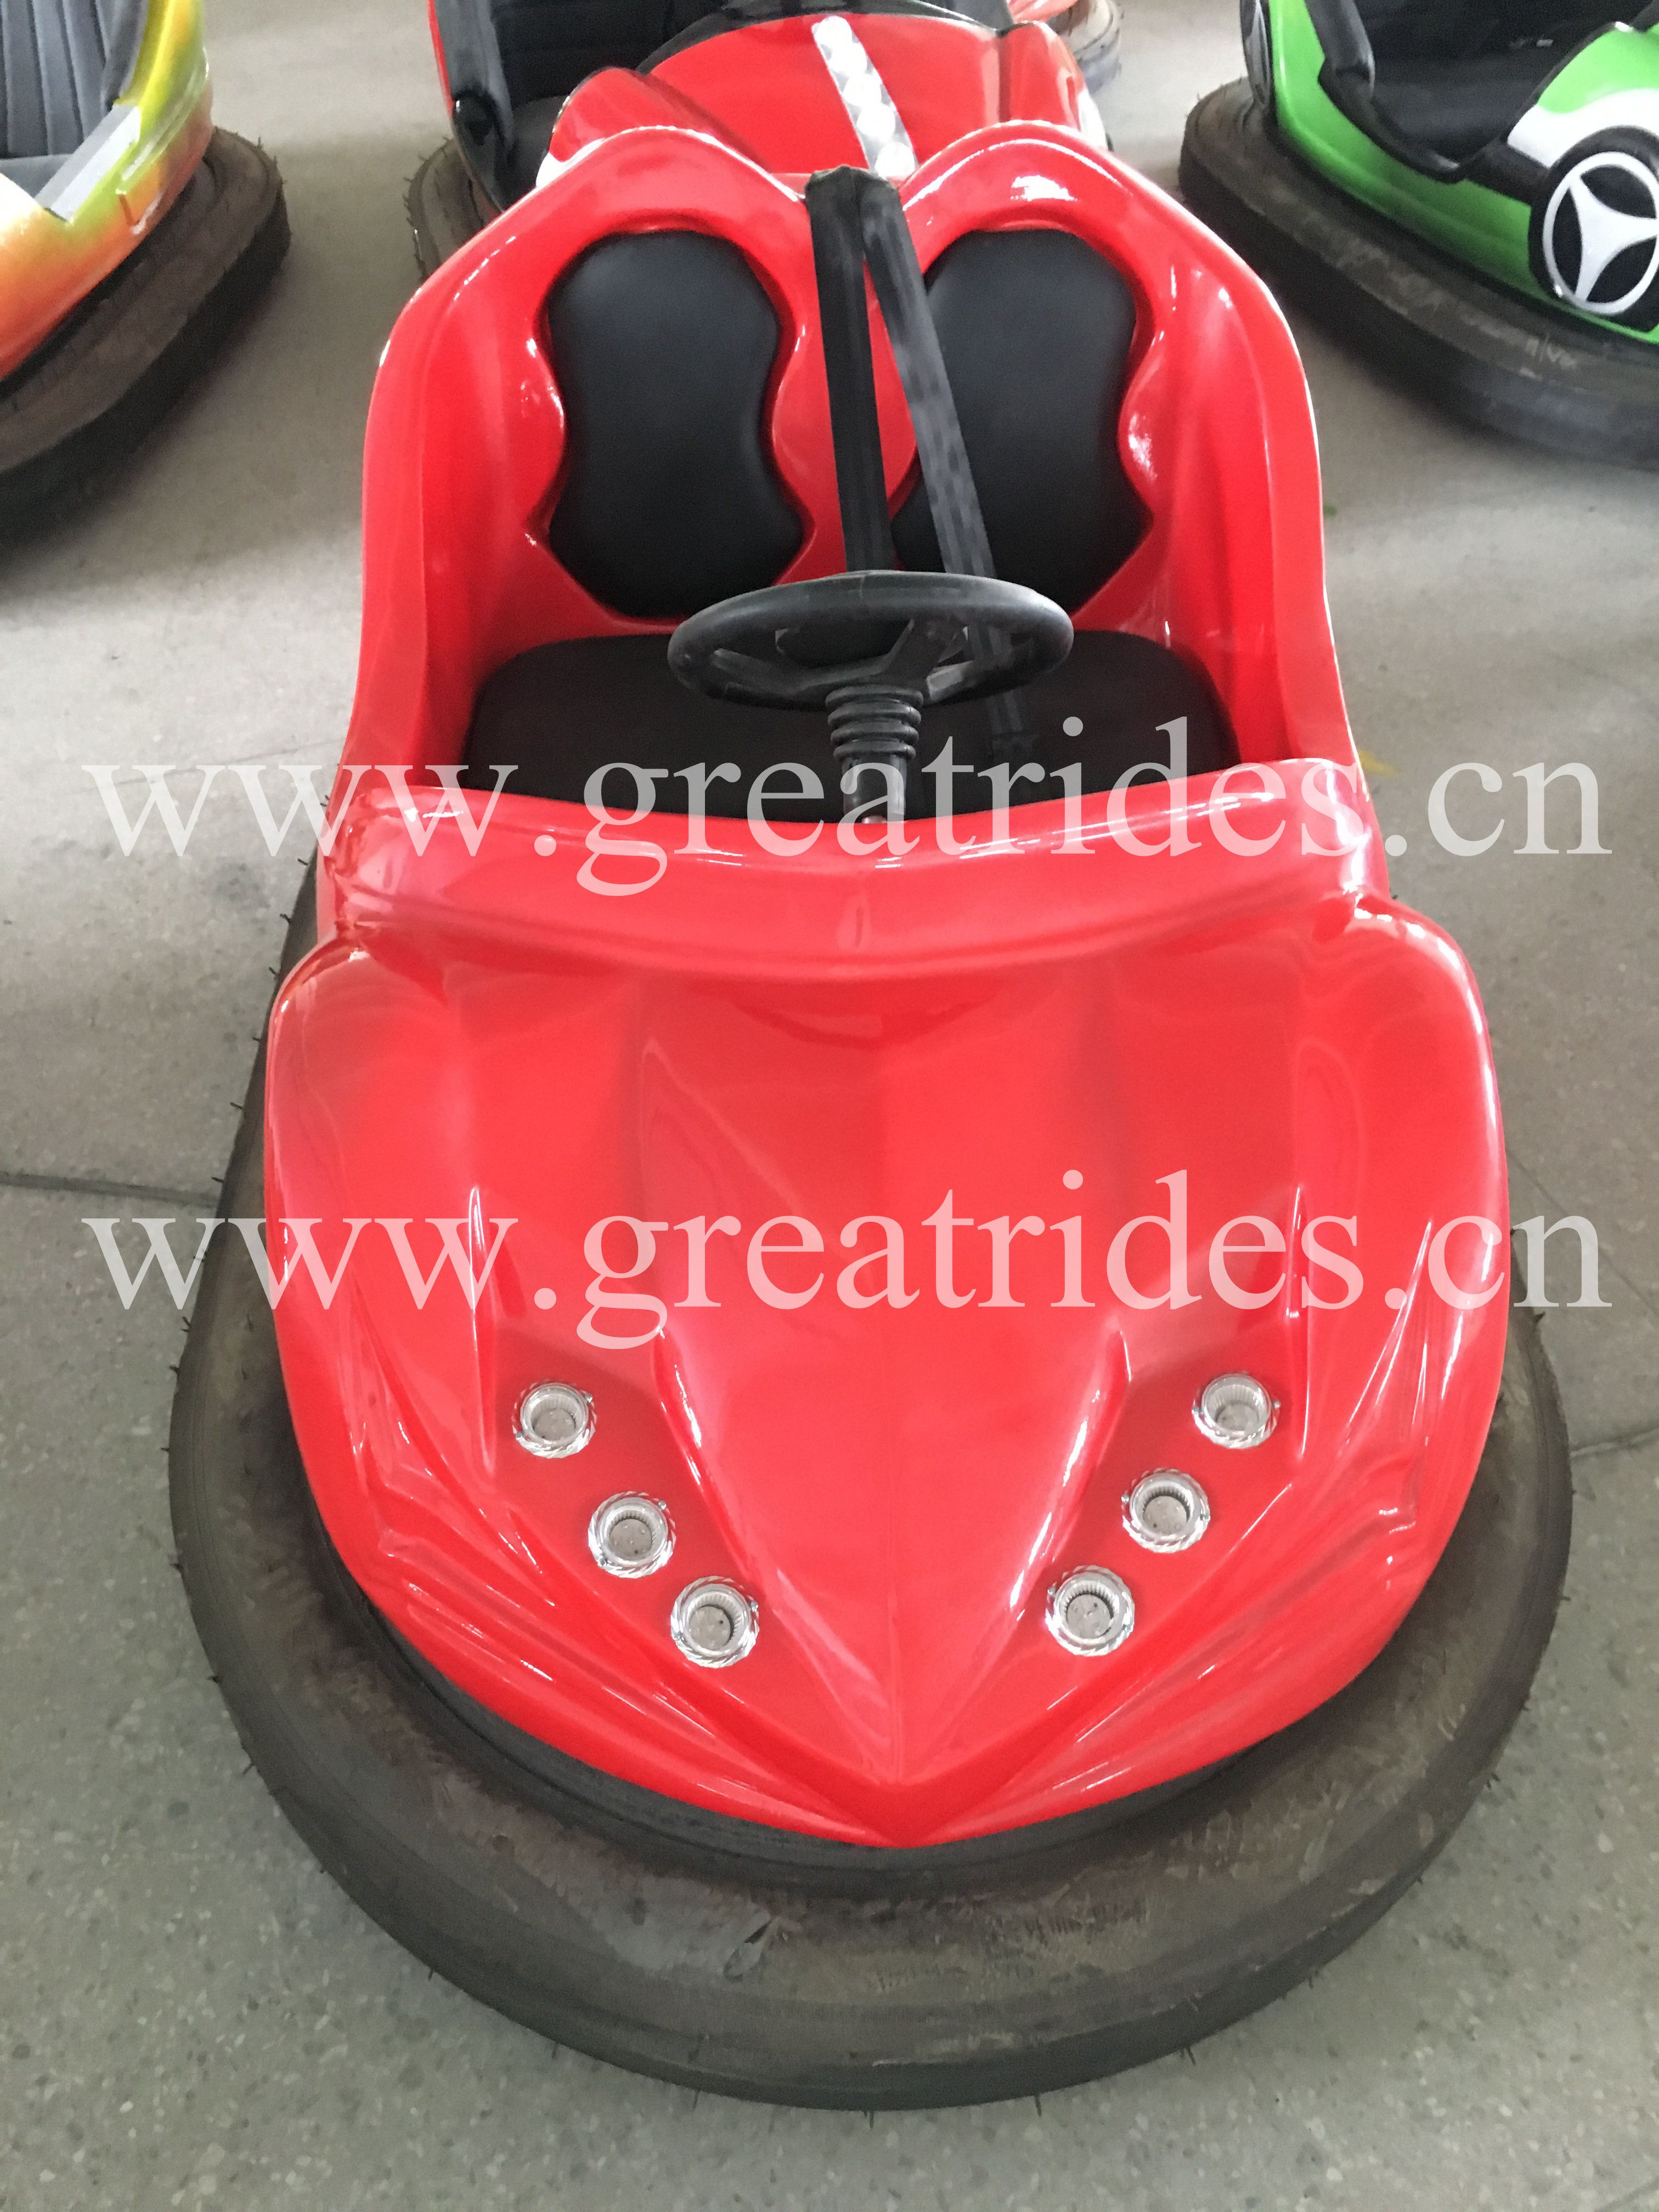 Battery operated bumper cars for sale baby car seats